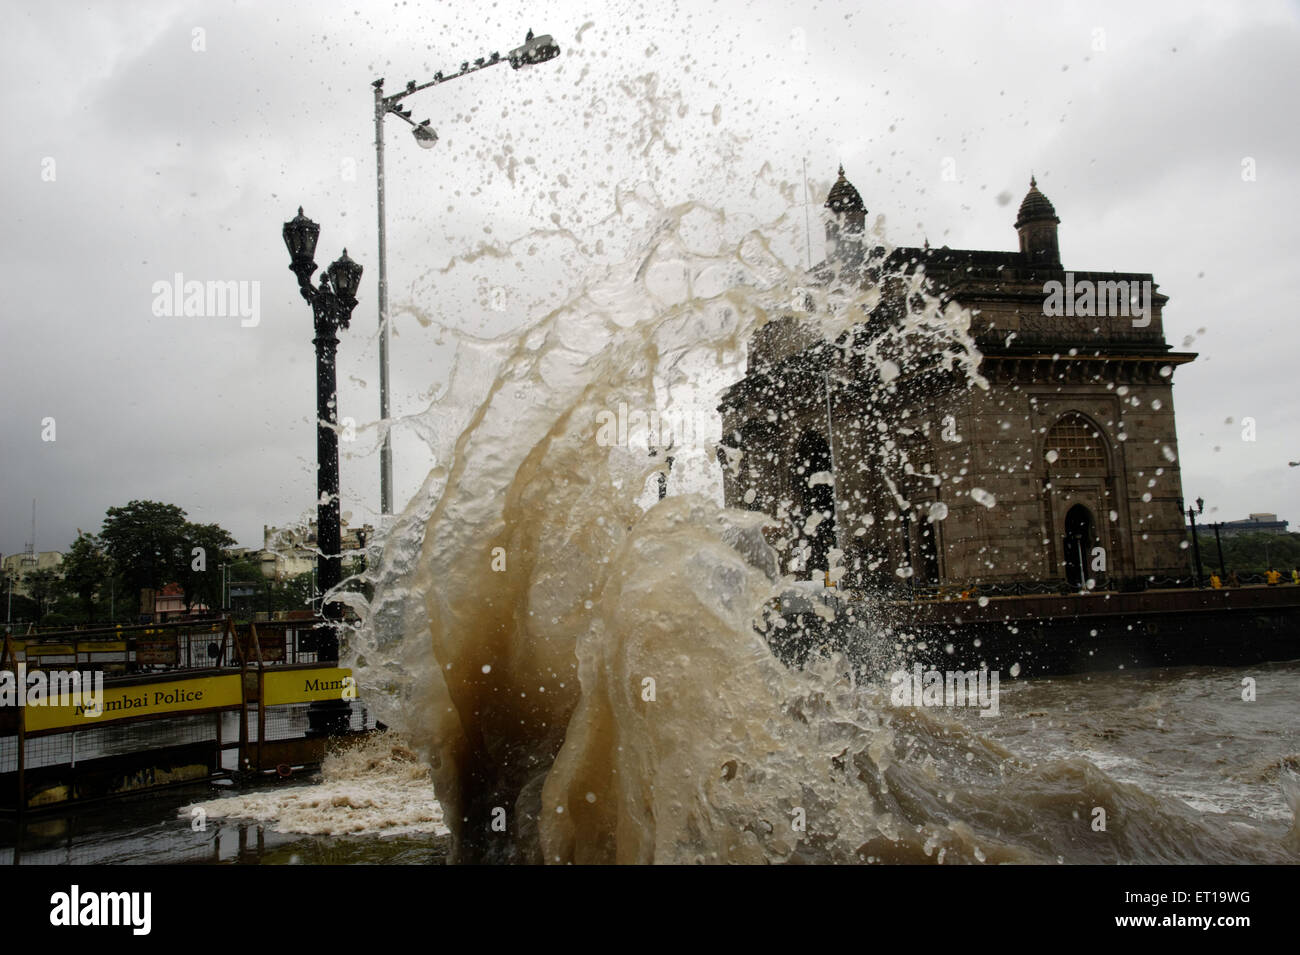 High tide Powerful Crashing Waves during Monsoon 4.8 Meter at Gateway of India Asia - Stock Image